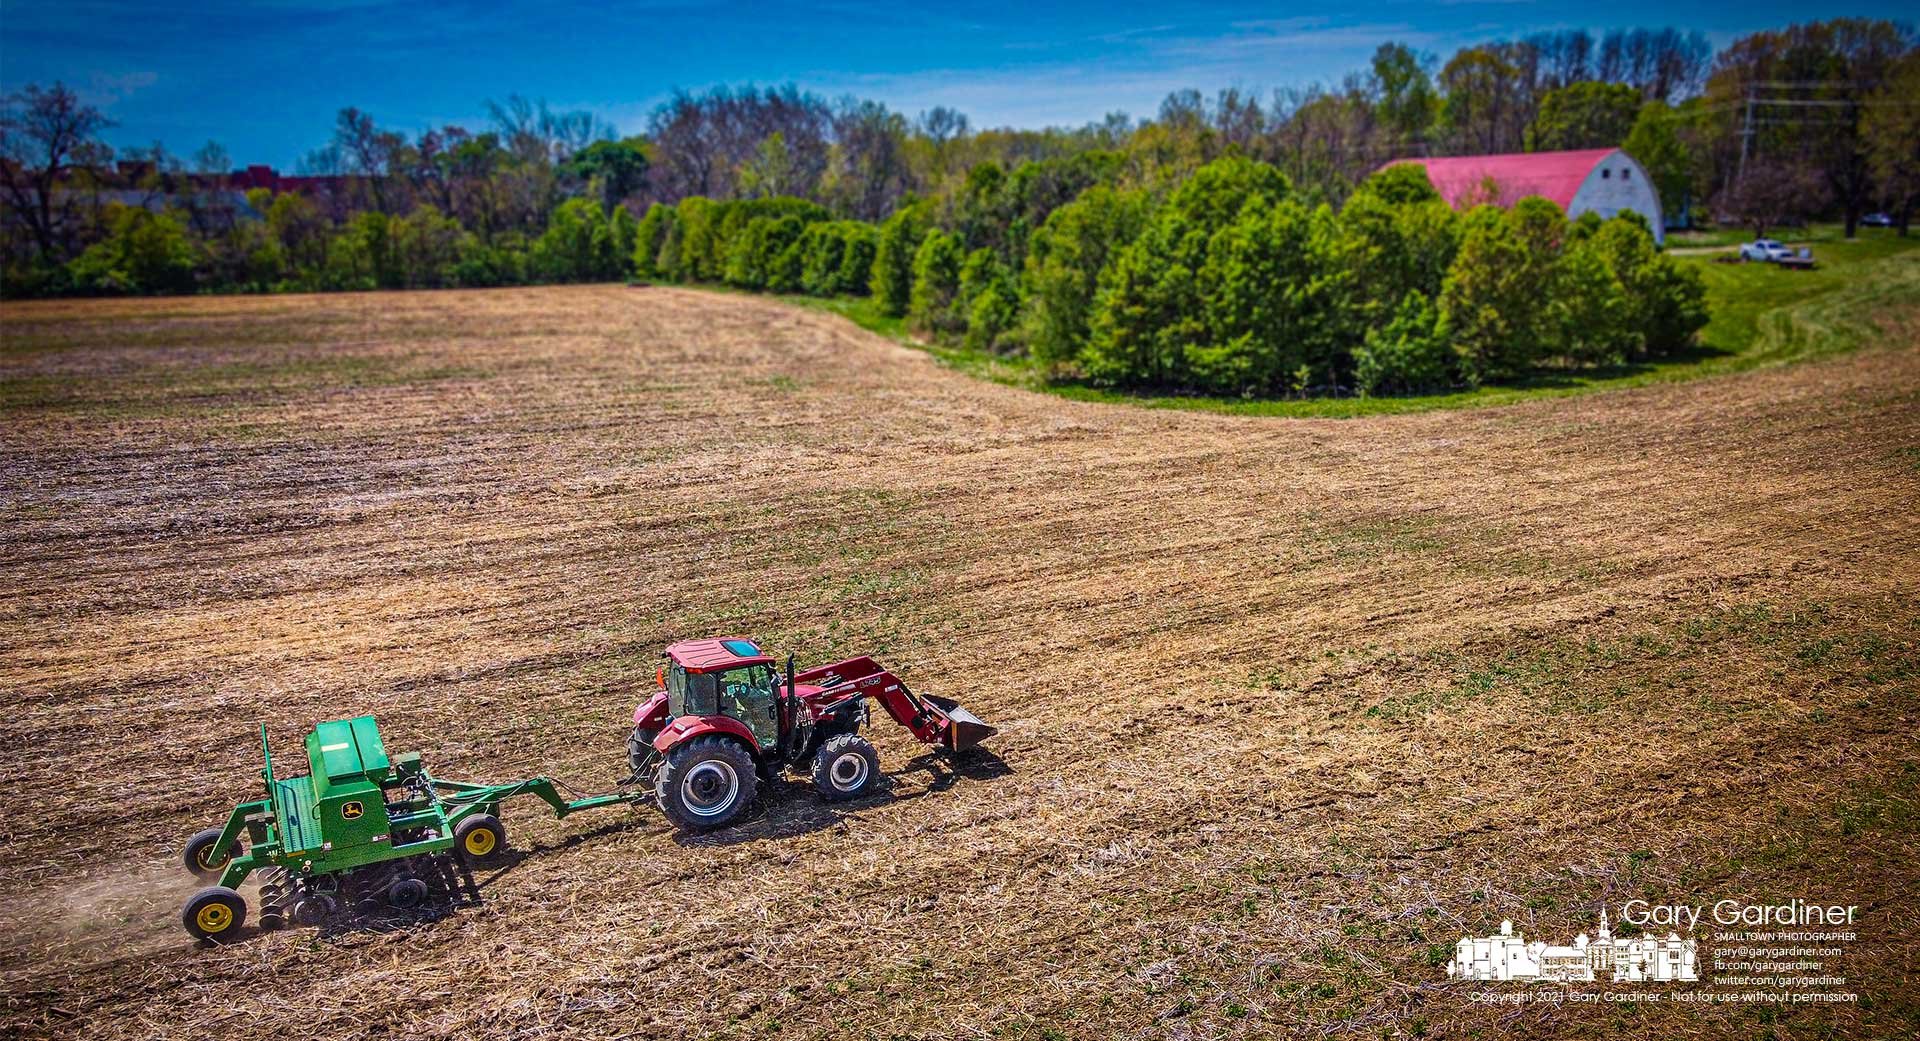 Kevin Scott runs a soybean planter over the fields at the Braun Farm hoping to finish this field and several others before rain starts tomorrow night. My Final Photo for April 27, 2021.